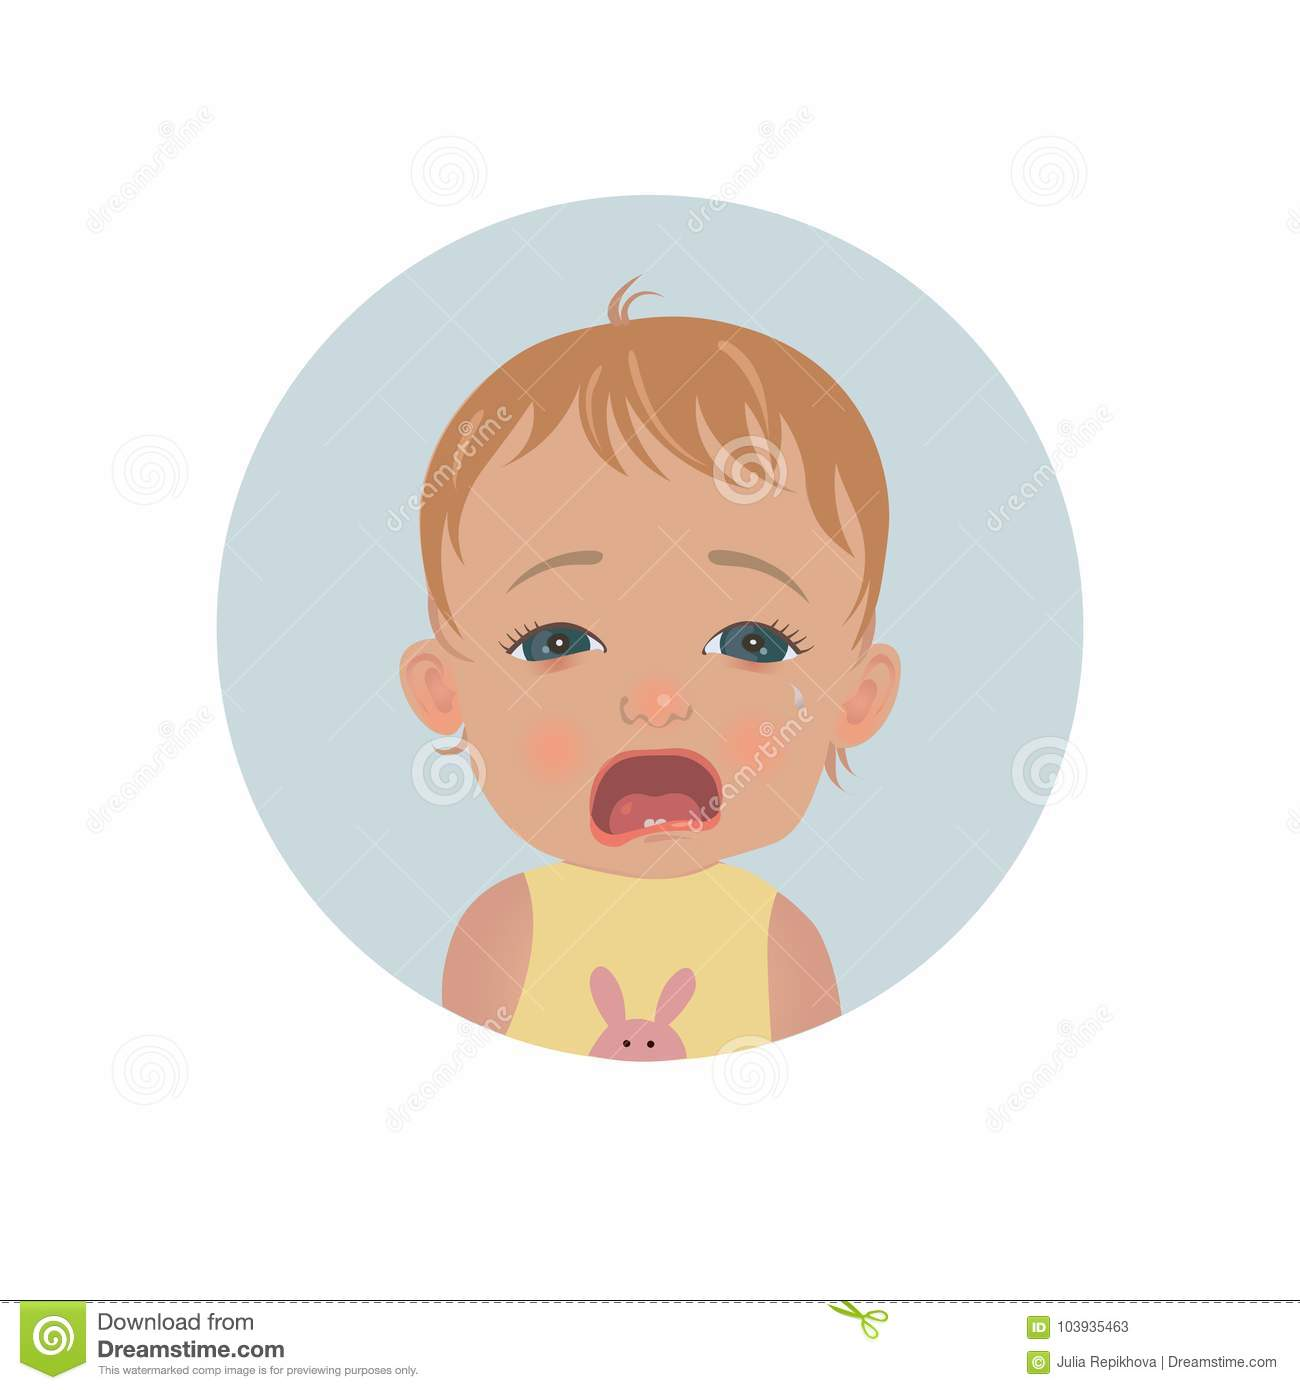 Tearful Cartoons Illustrations Amp Vector Stock Images